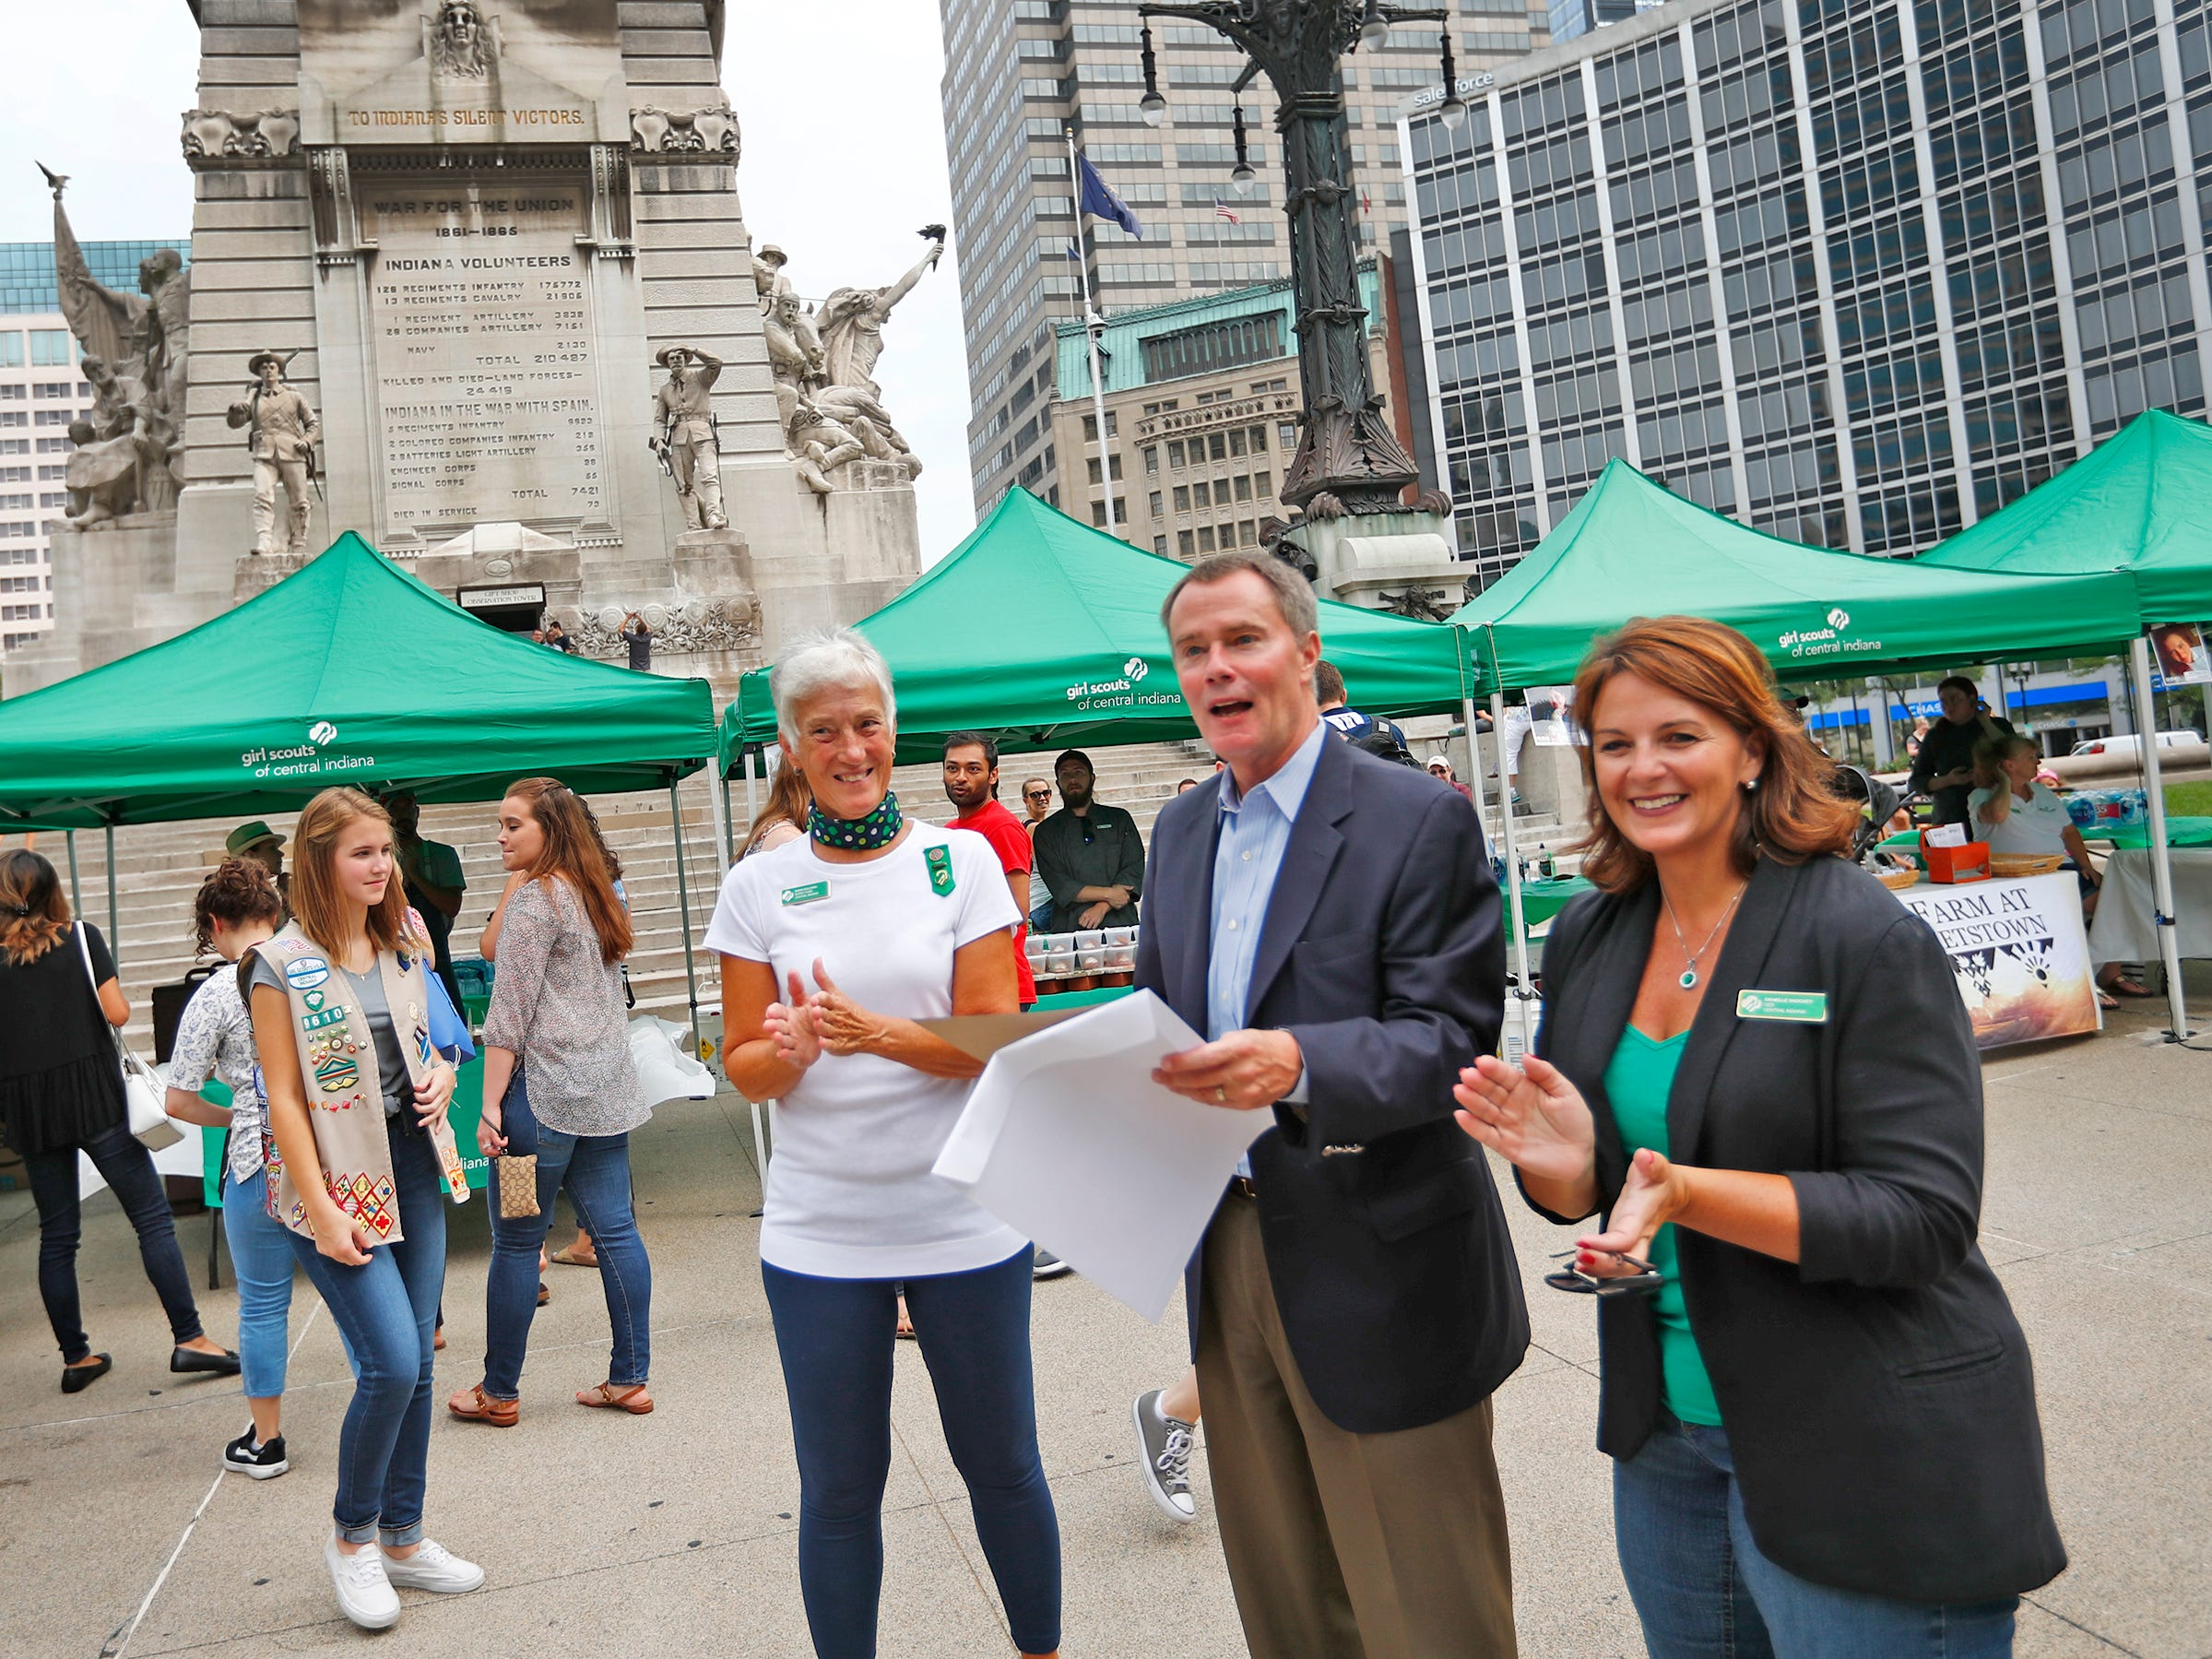 Mayor Joe Hogsett supports Girl Scouts with a proclamation calling Friday, Aug. 10, 2018 as Girl Scouts S'mores on the Circle Day in Indianapolis, during the Girl Scouts' S'mores on the Circle event.  Girl Scouts of Central Indiana Board Chair Diana Sullivan, left, and CEO Danielle Shockey, right, join Hogsett. The event celebrated National S'mores Day.  Seven local chefs were featured, creating gourmet s'mores treats, sold as a fundraiser.  Proceeds go for financial assistance for Girl Scouts, helping all girls who want to be a girl scout participating in hands-on adventures and STEM activities.